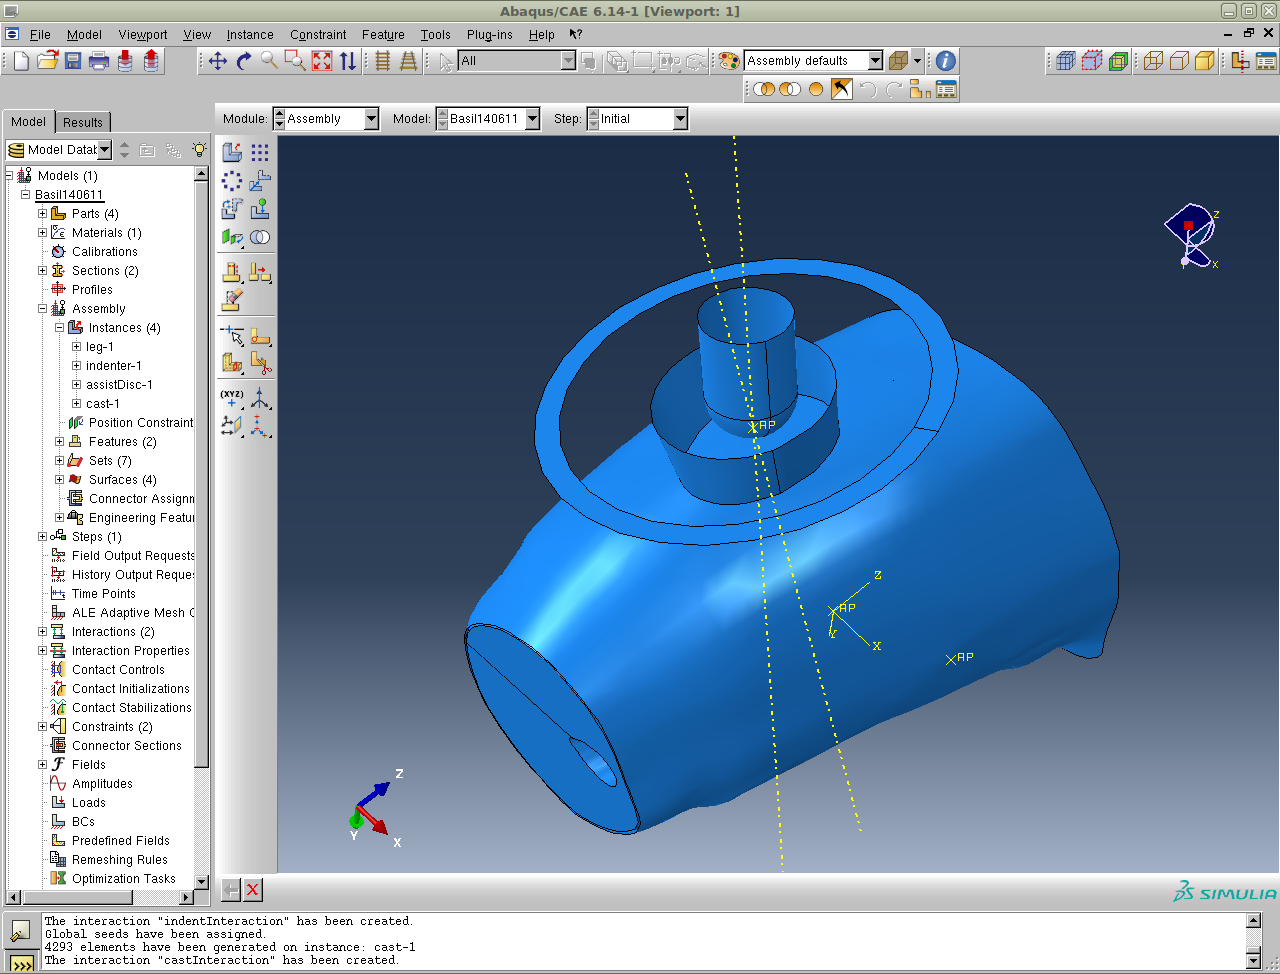 documentation/abaqus_fullAssembly.png